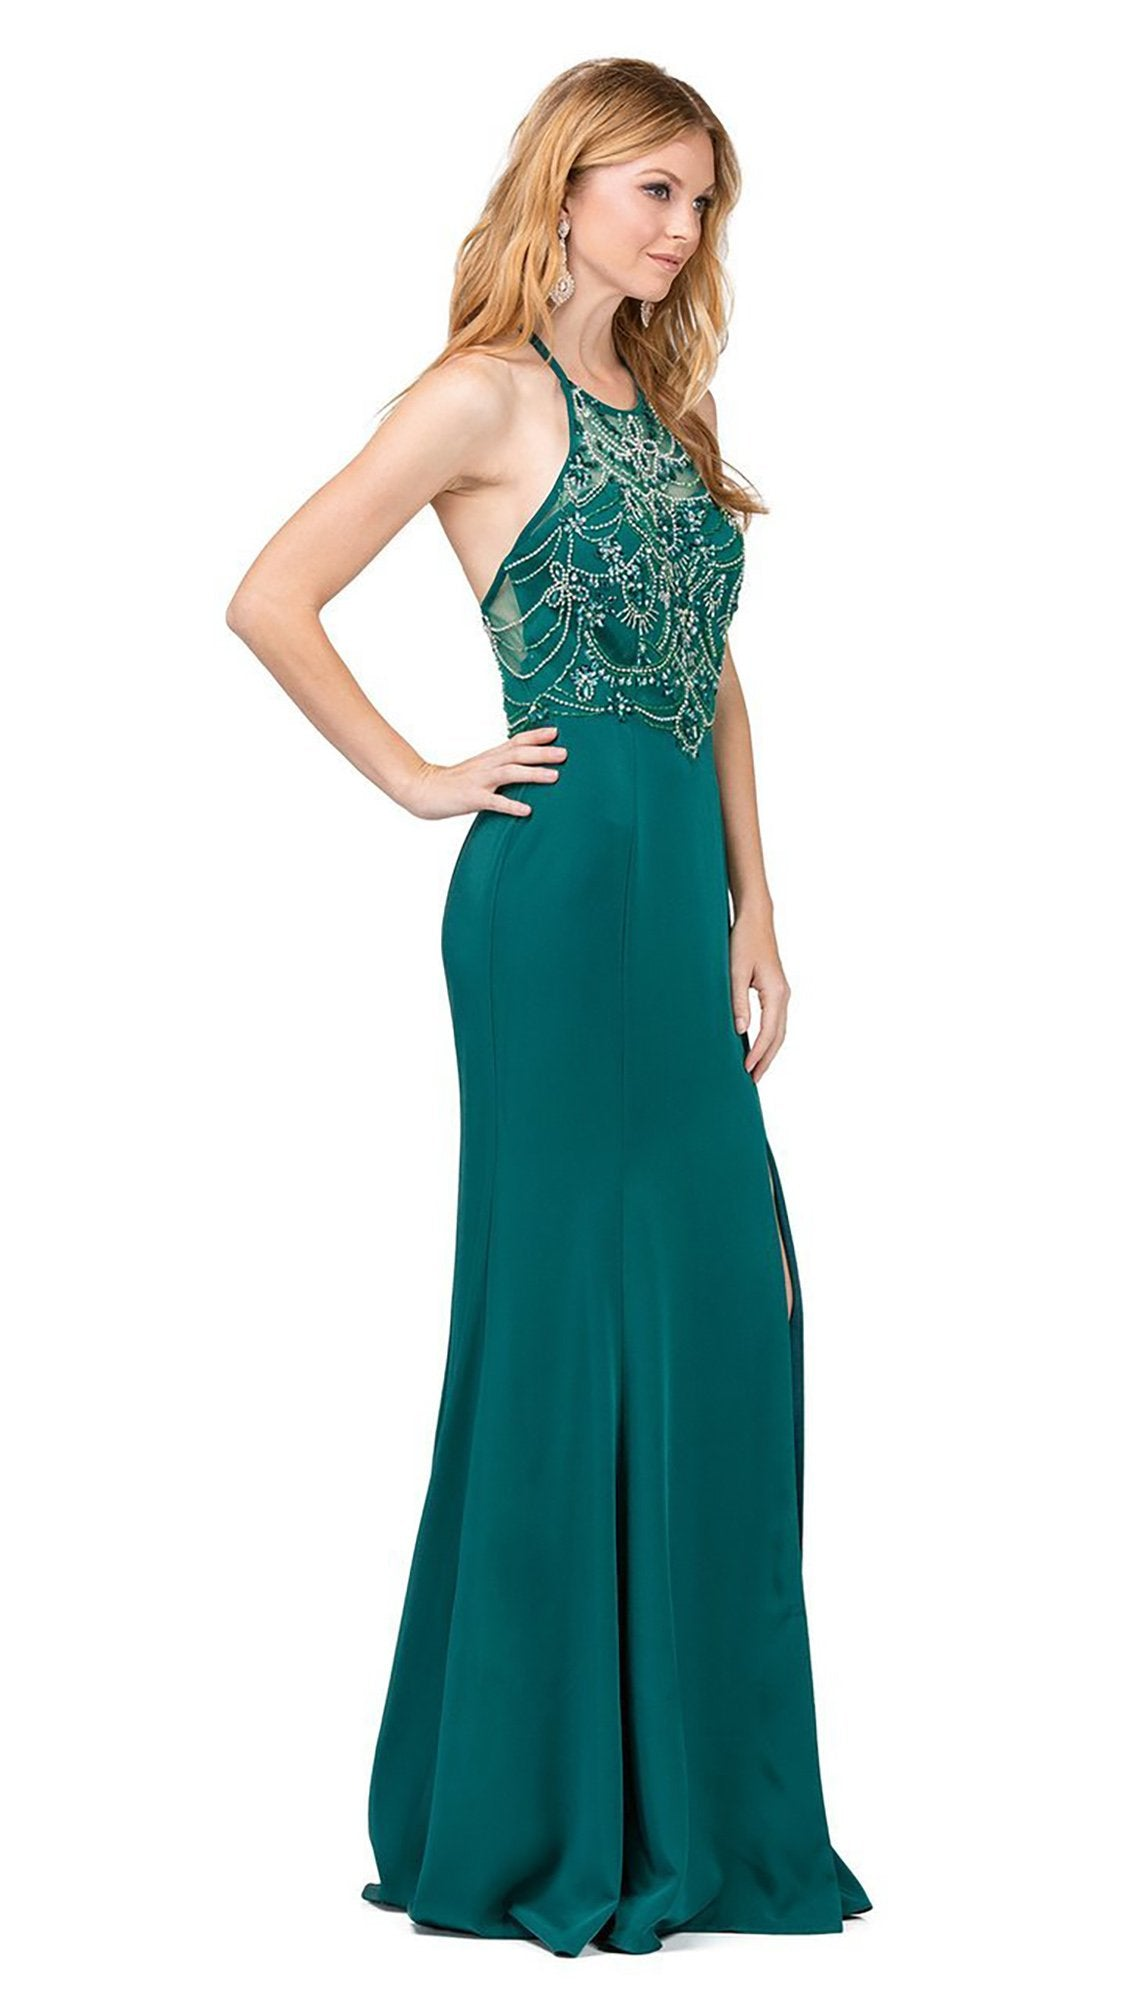 Dancing Queen Illusion Halter Jeweled Garland Motif Sheath Gown - 1 pc Hunter Green In Size M Available In Green